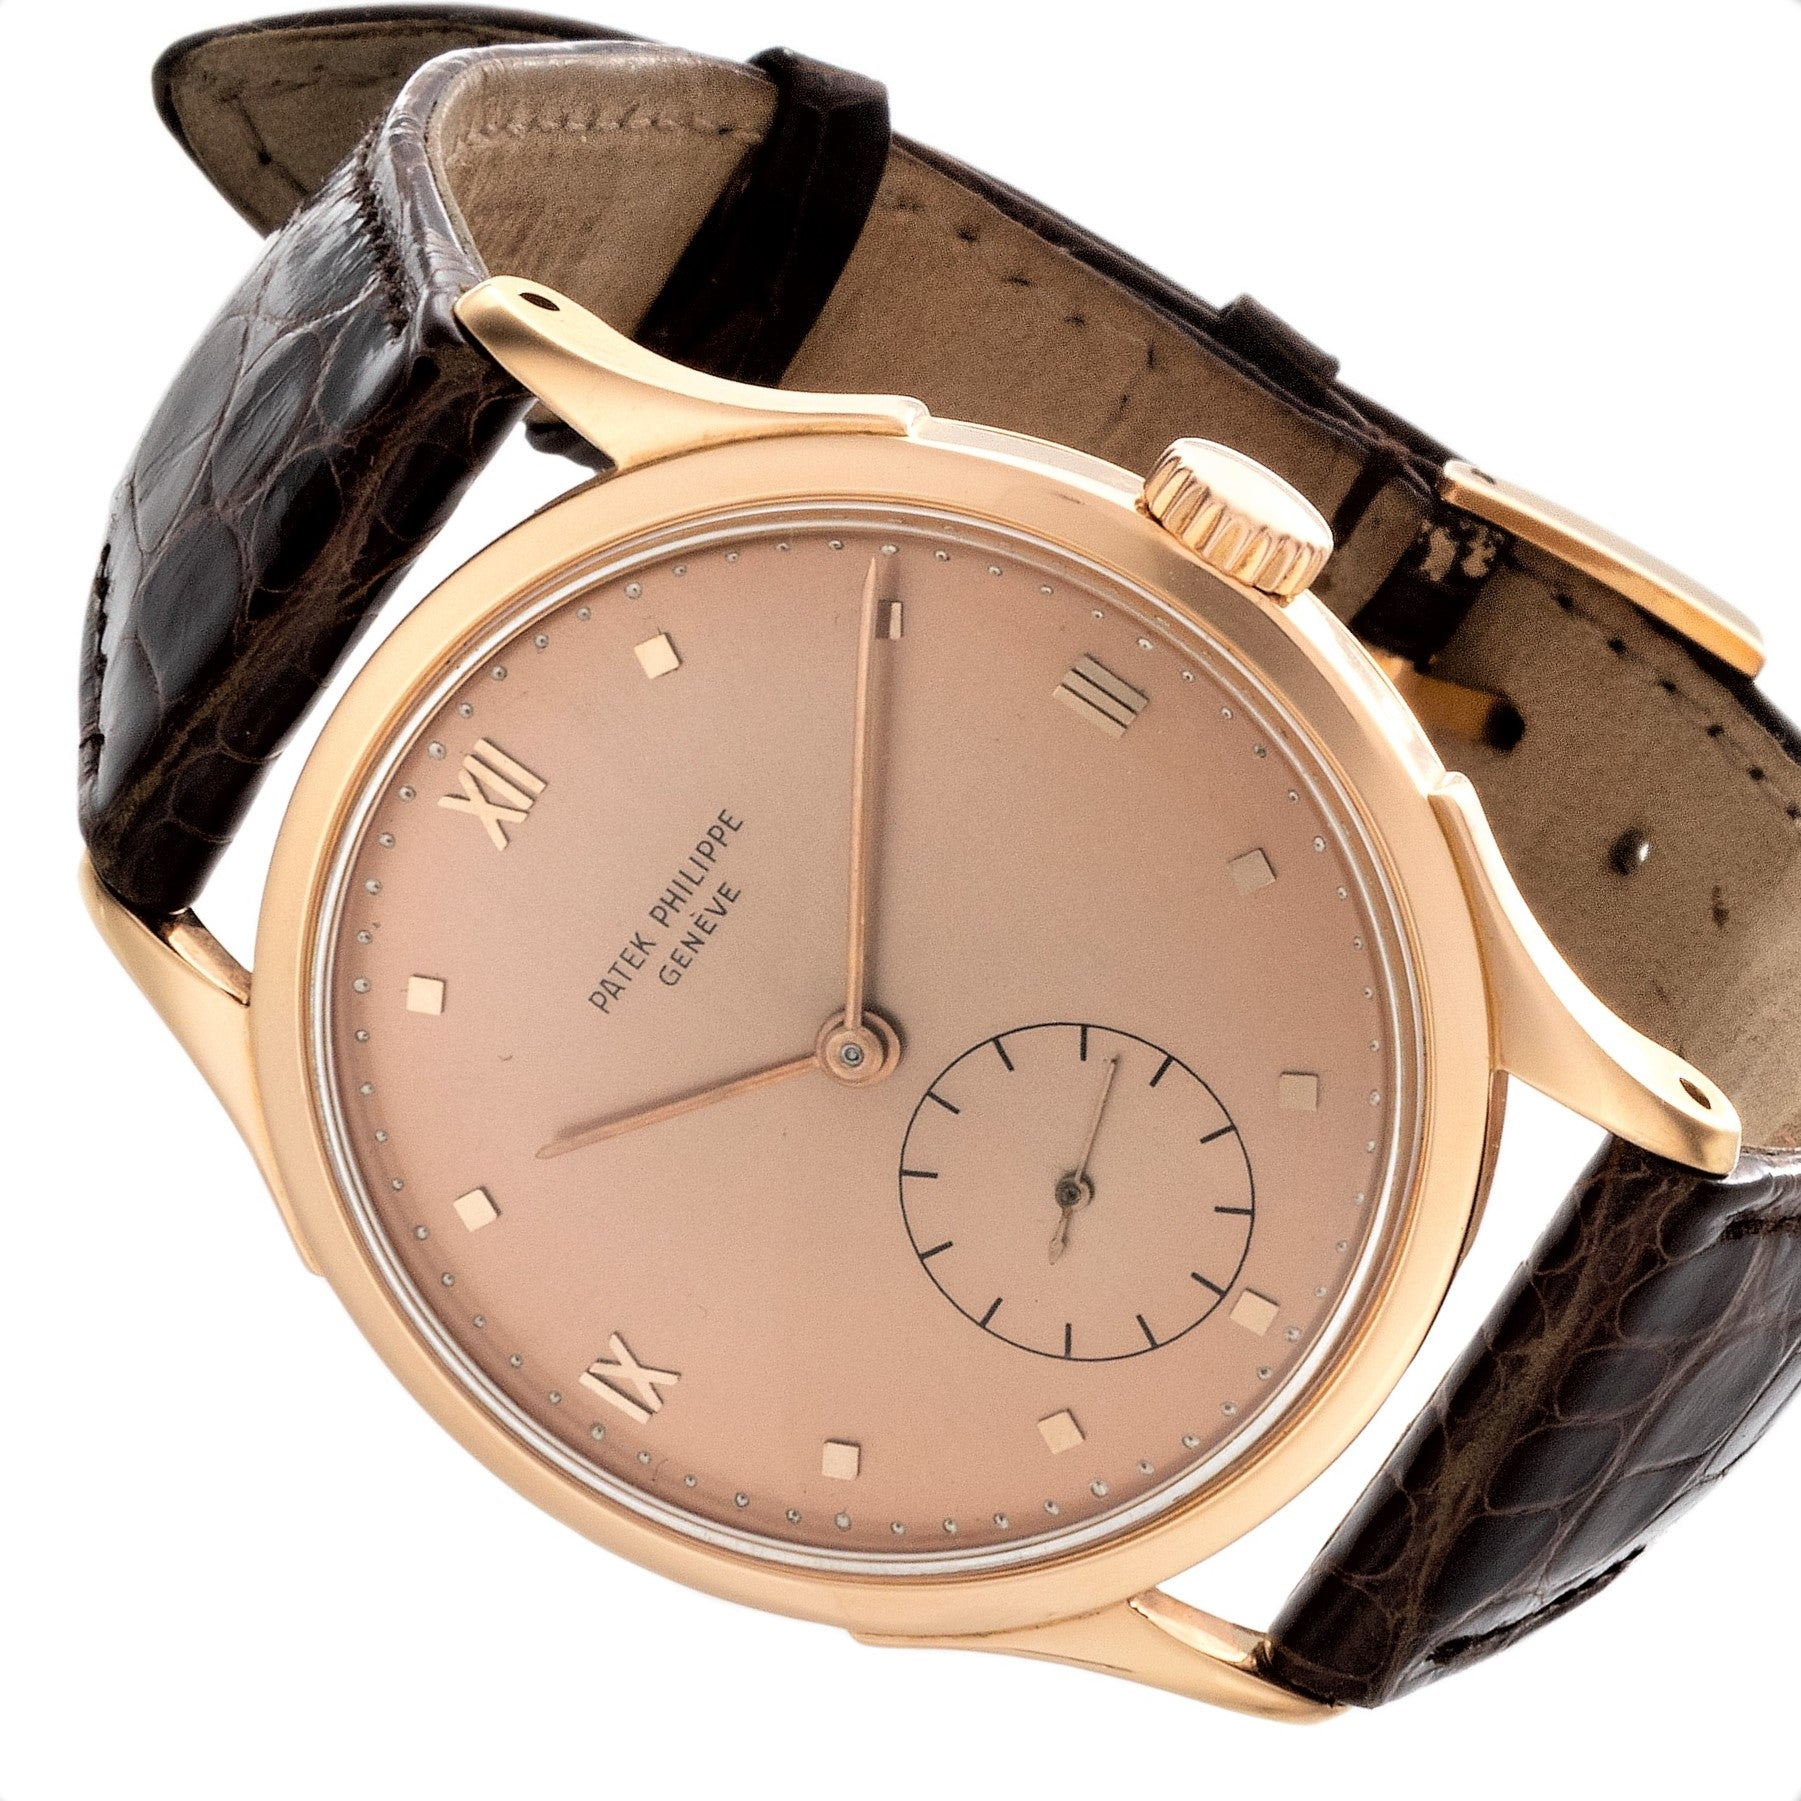 Patek Philippe 1589R Rose Gold 36 mm Calatrava Watch.  Circa 1954